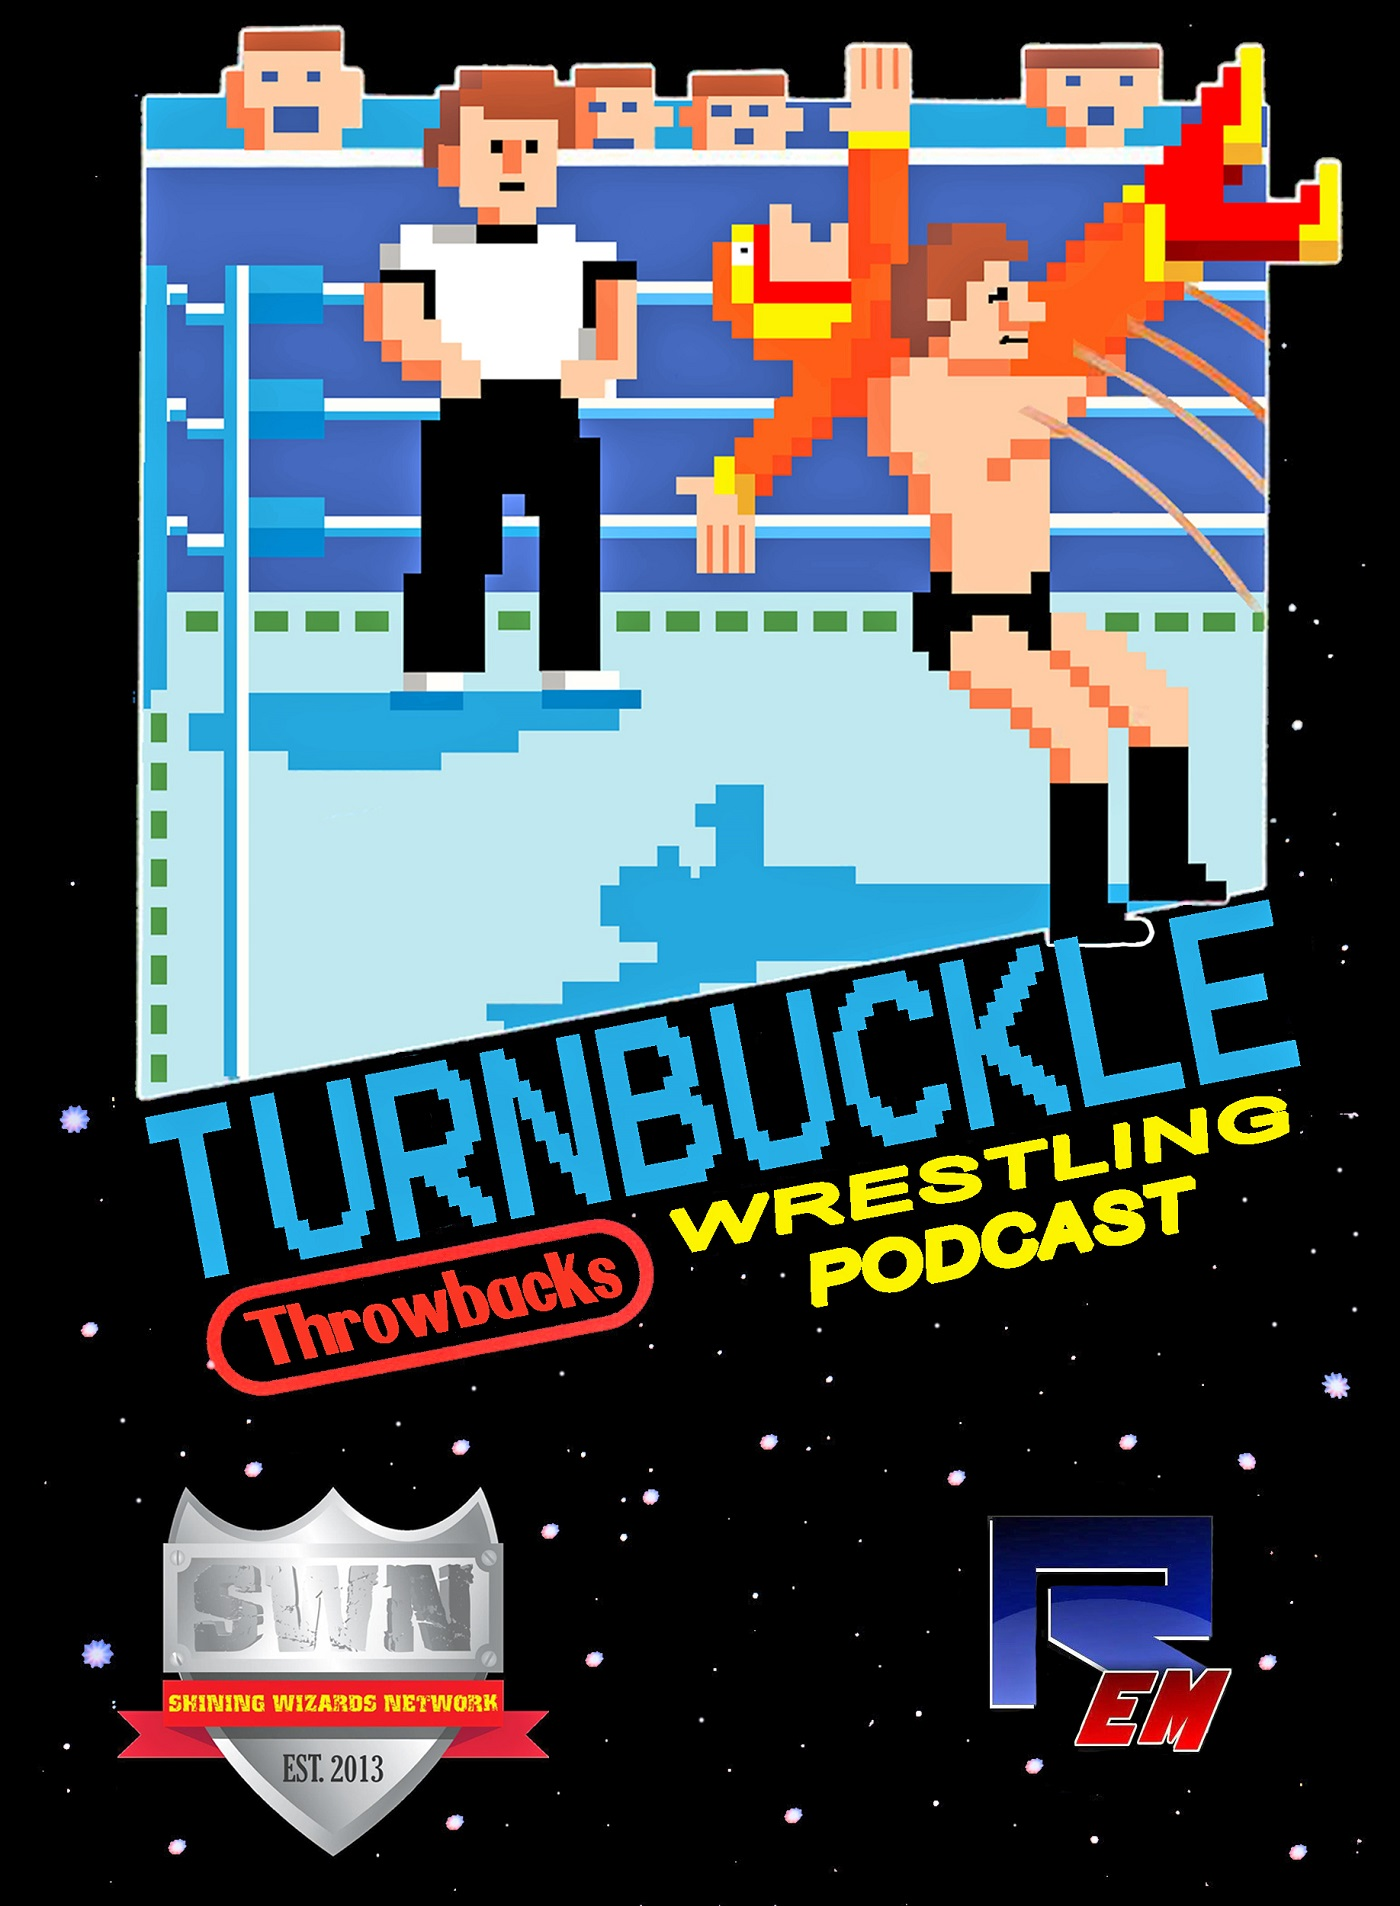 The Turnbuckle Throwbacks Wrestling Podcast » http://turnbucklethrowbacks.com/feed/podcast/